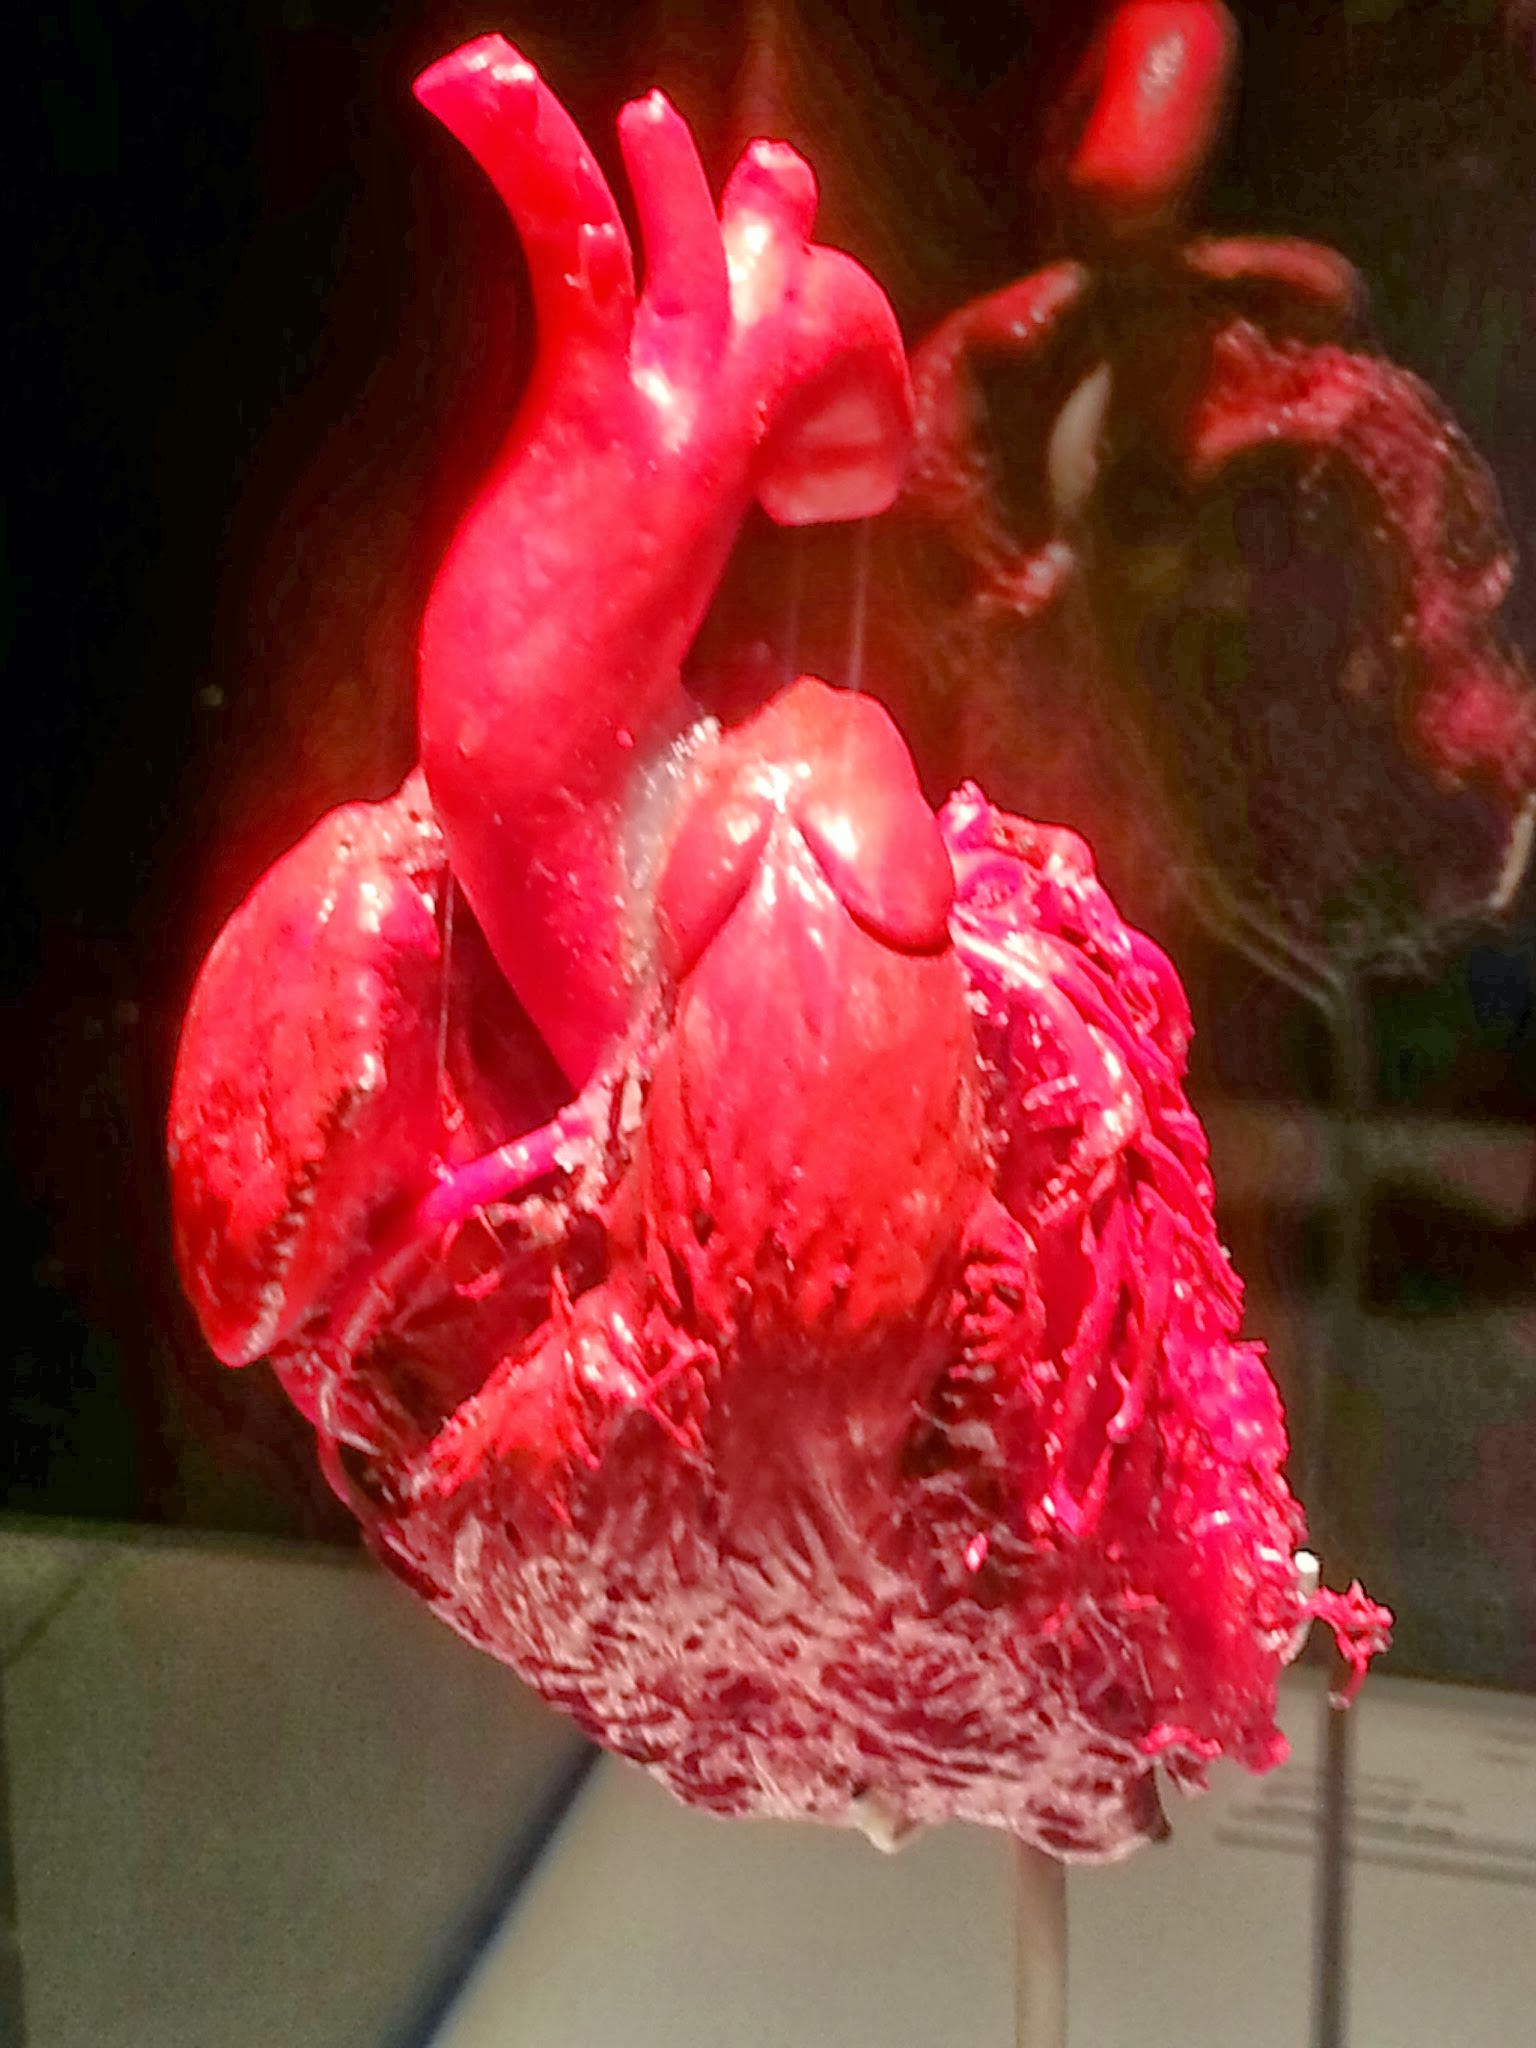 Real human heart images - photo#26